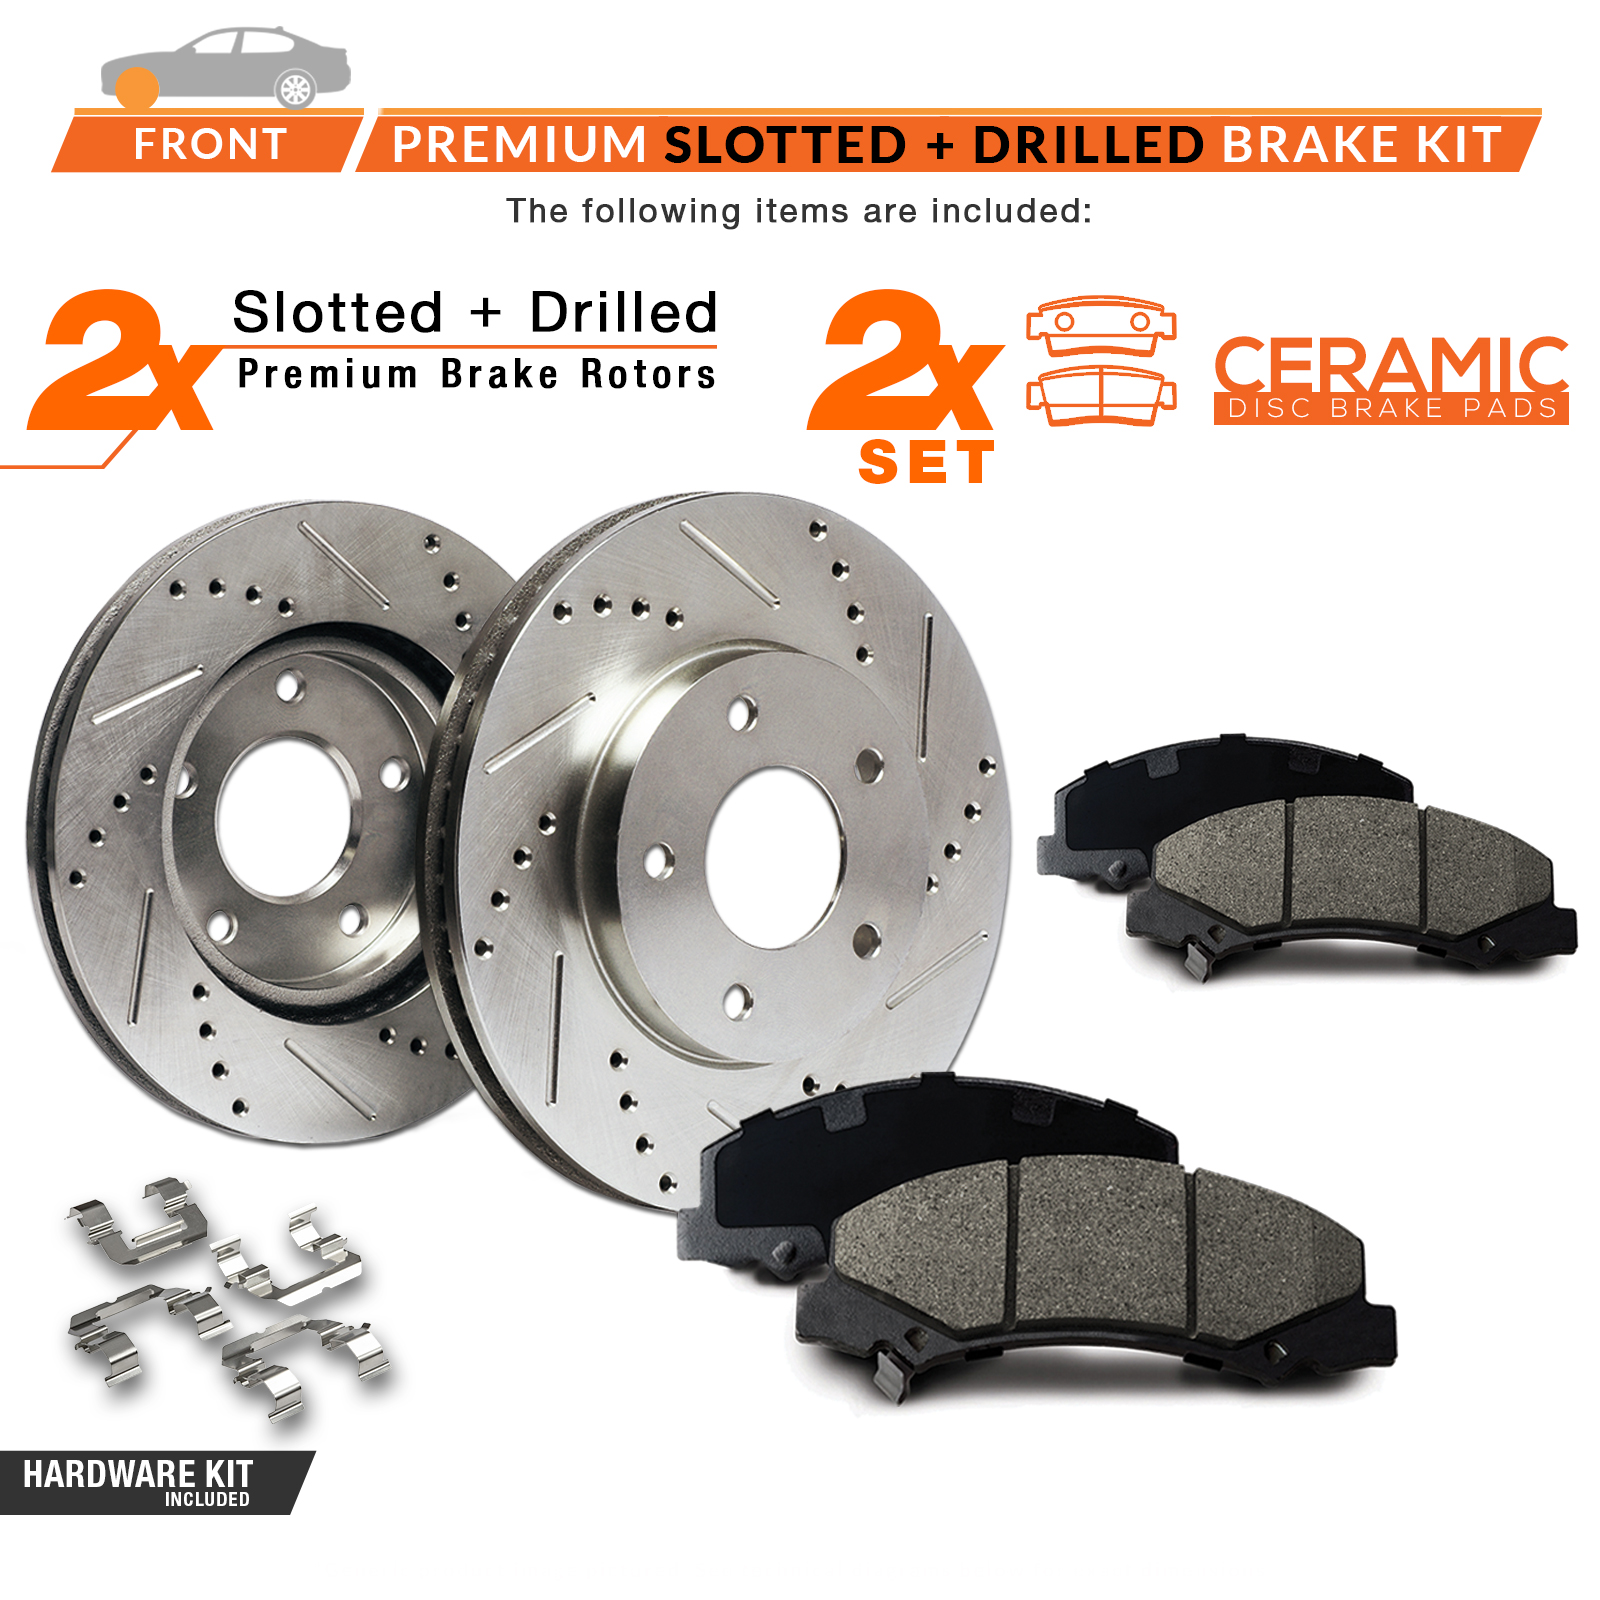 FRONT-KIT-Slotted-amp-Cross-Drilled-Rotors-with-Ceramic-Pads-amp-Hardware-Kit thumbnail 2